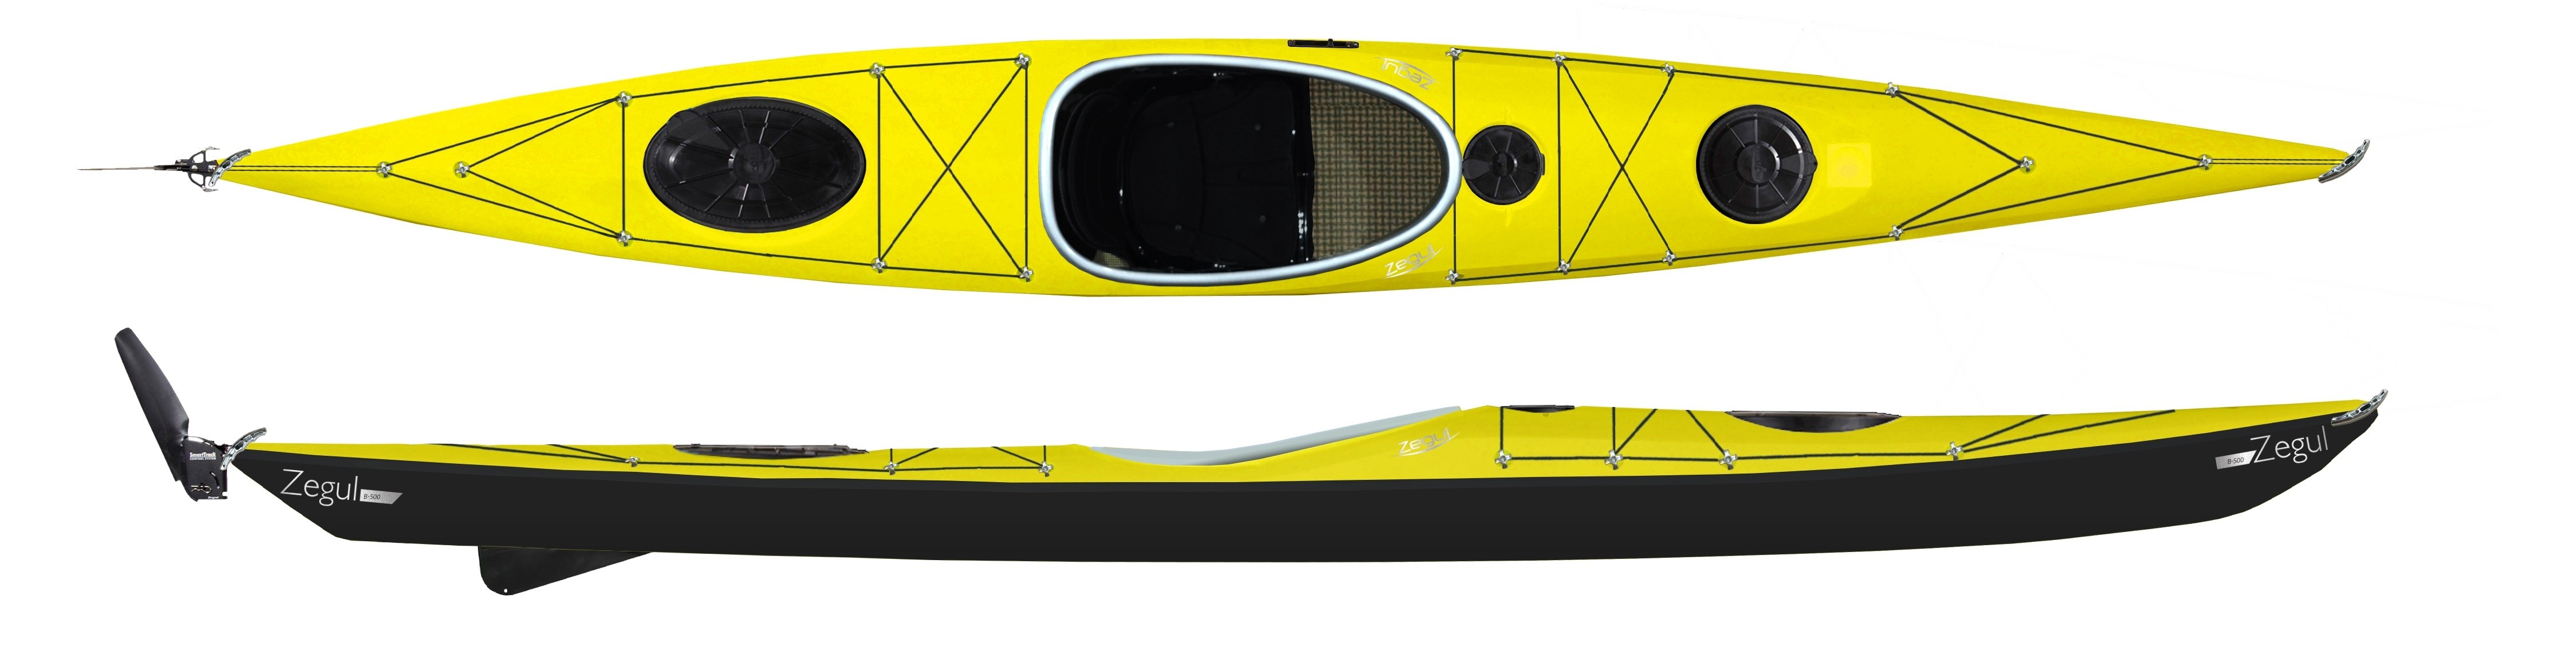 Kayaks: Zegul B-500 by Tahe Outdoors - Image 4654